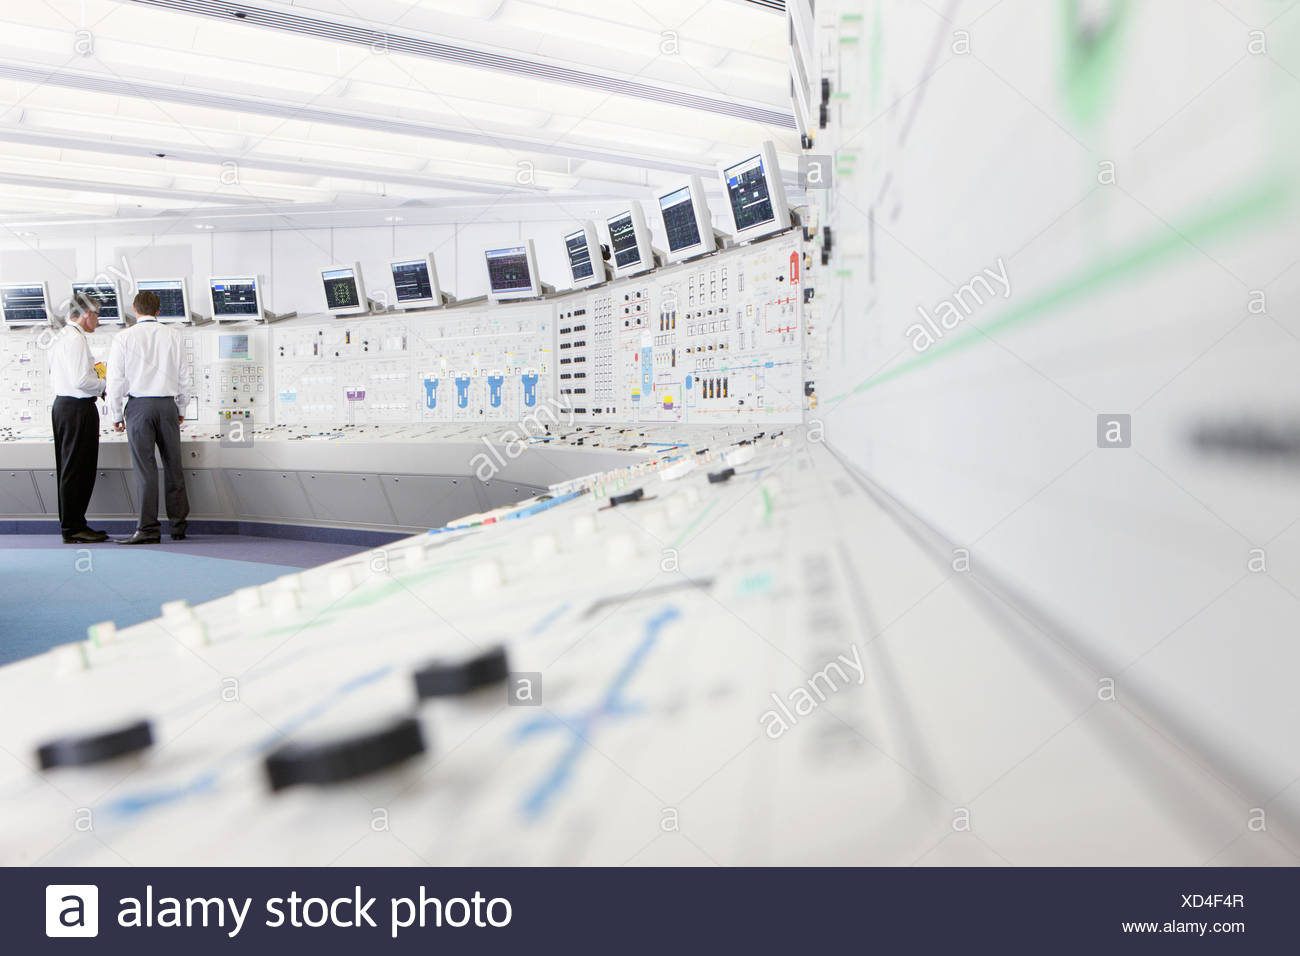 Engineers at control panel in control room of nuclear power station - Stock Image